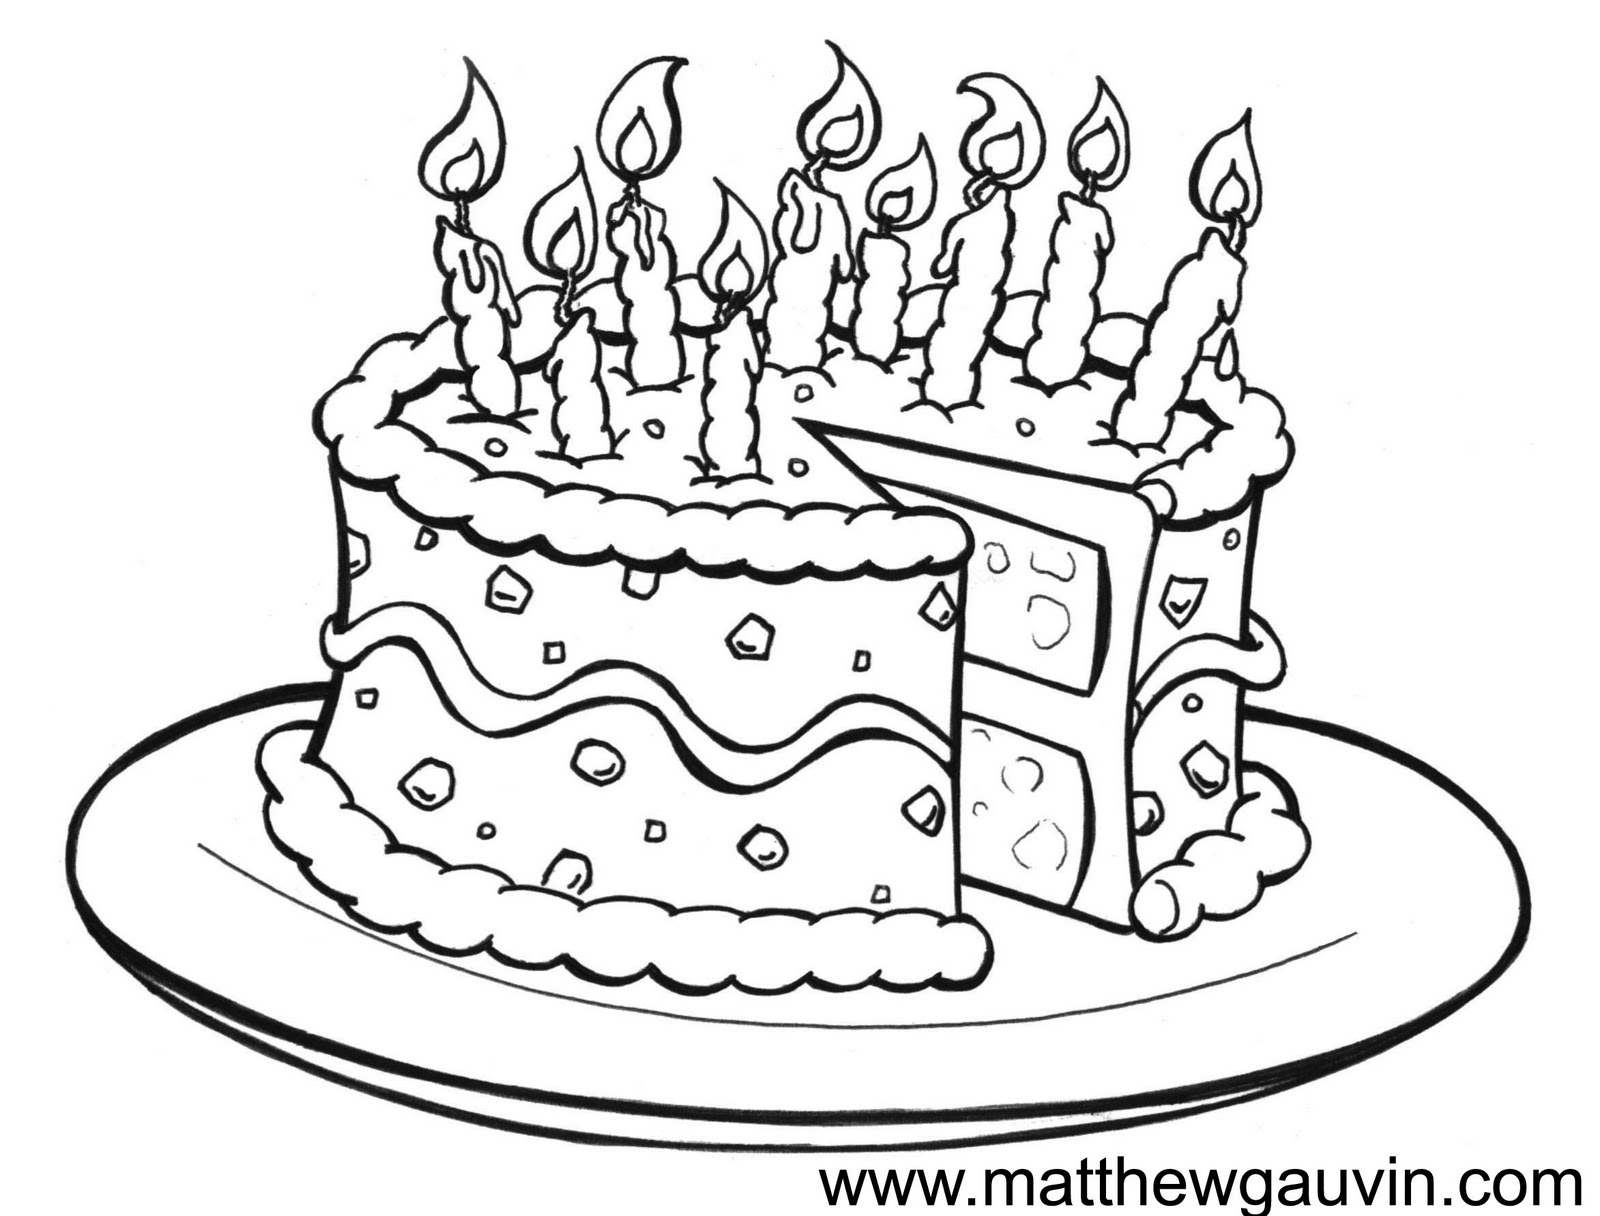 birthday cake coloring book ; birthday-cake-drawing-free-clip-arts-sanyangfrp-happy-birthday-cake-drawing-sms